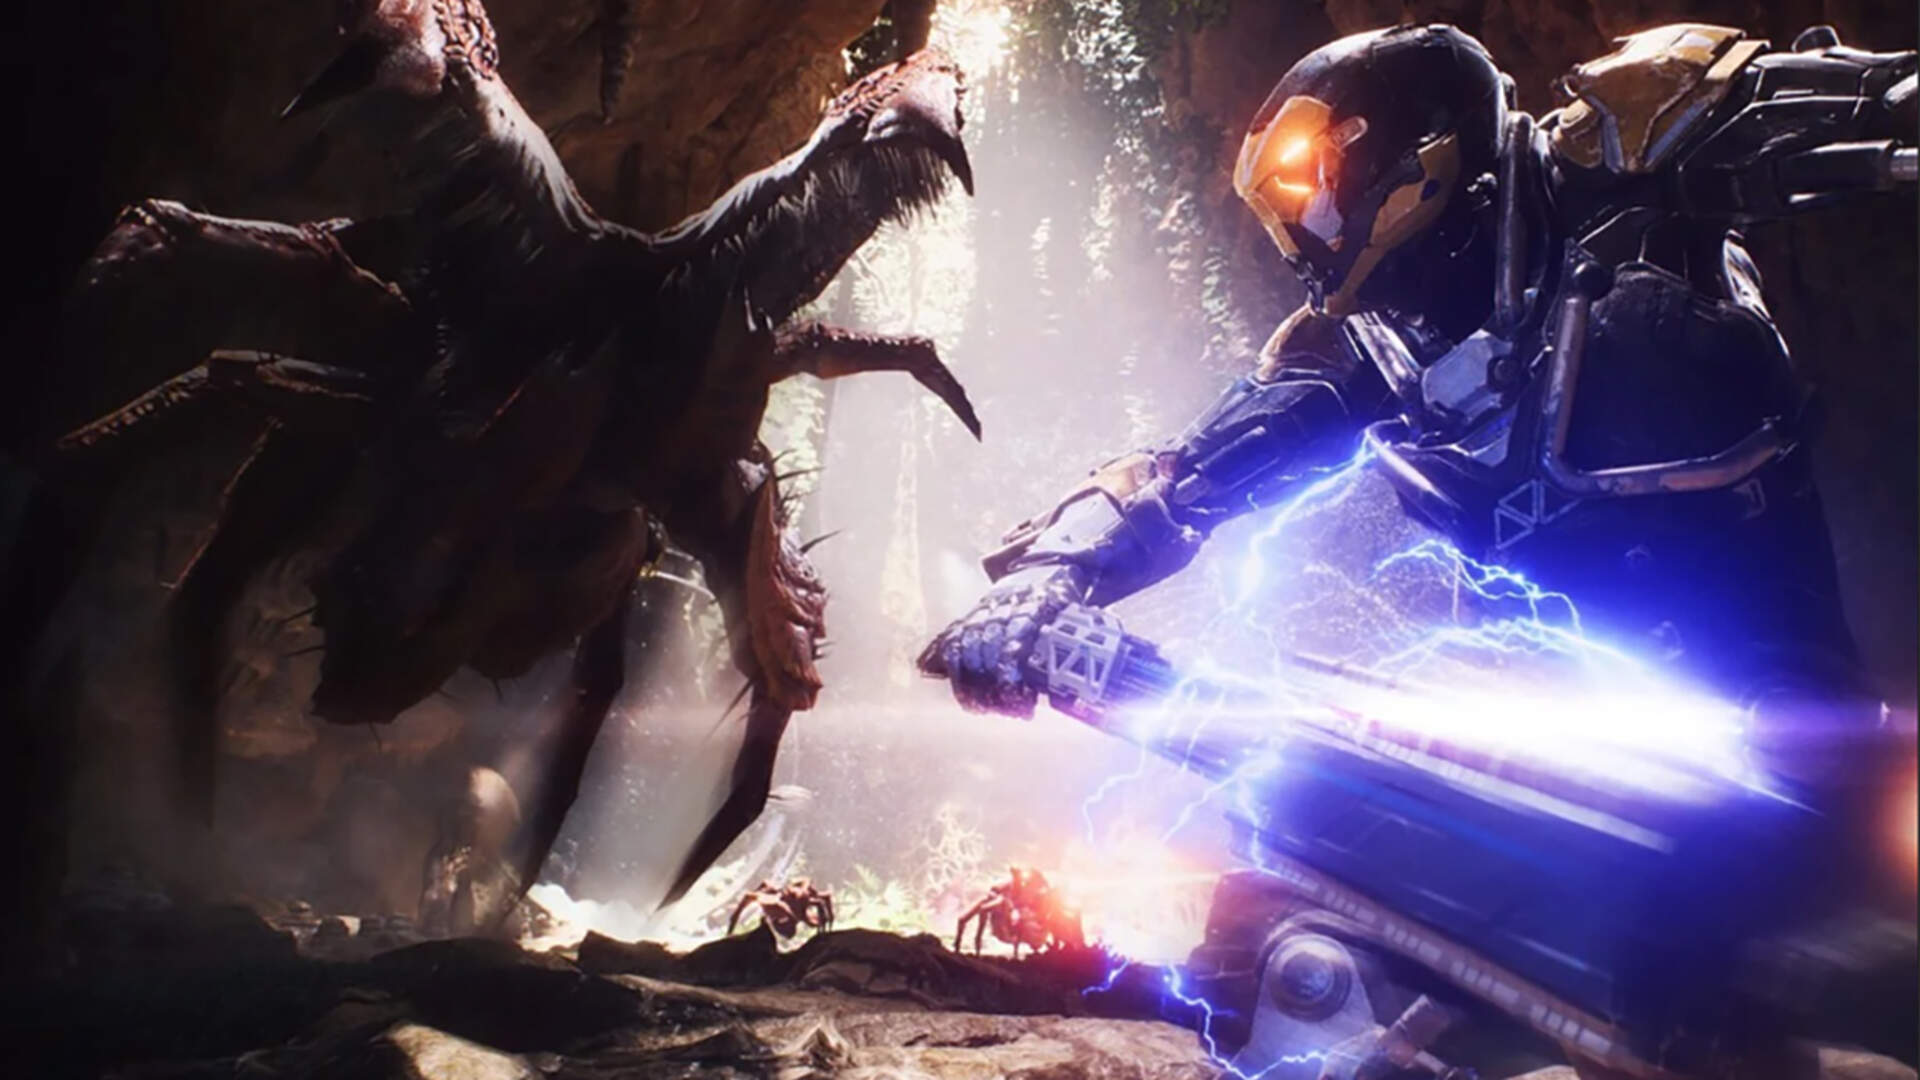 BioWare Offers Update on Anthem PS4 Crashes, Says No Affected Systems Have Been Permanently Bricked